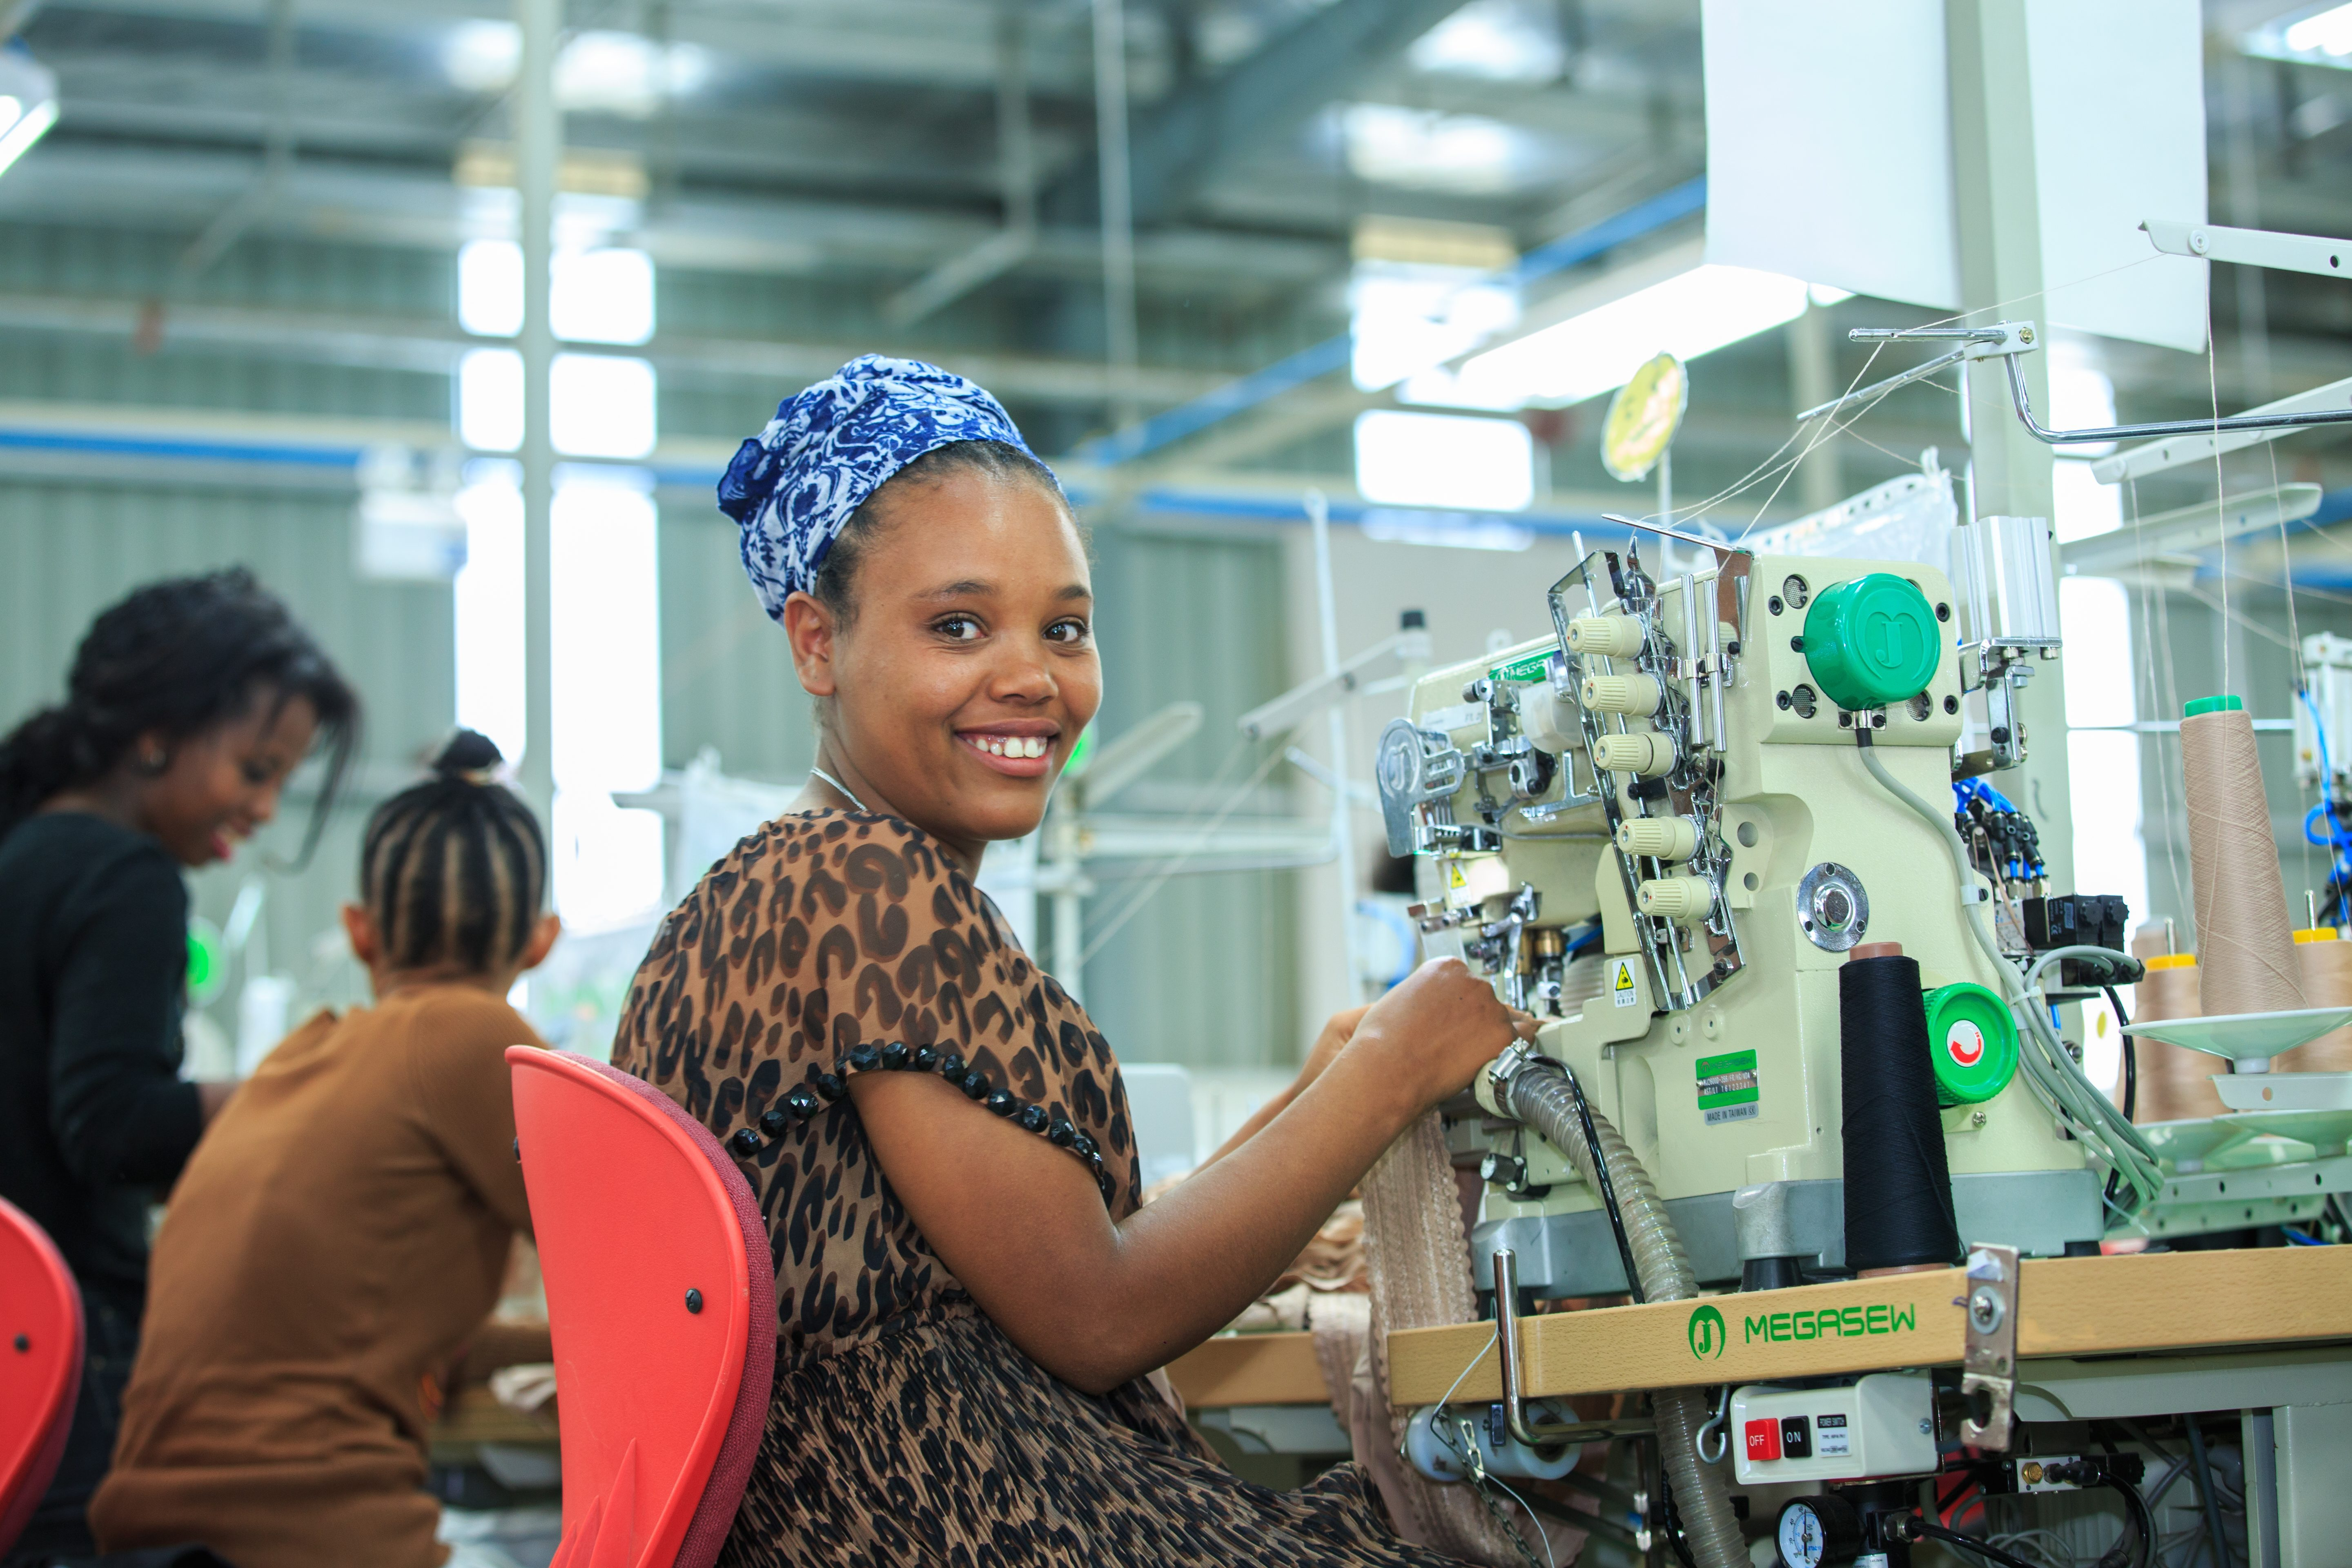 Ethiopia Stands Poised to Lead an African Industrial Revolution